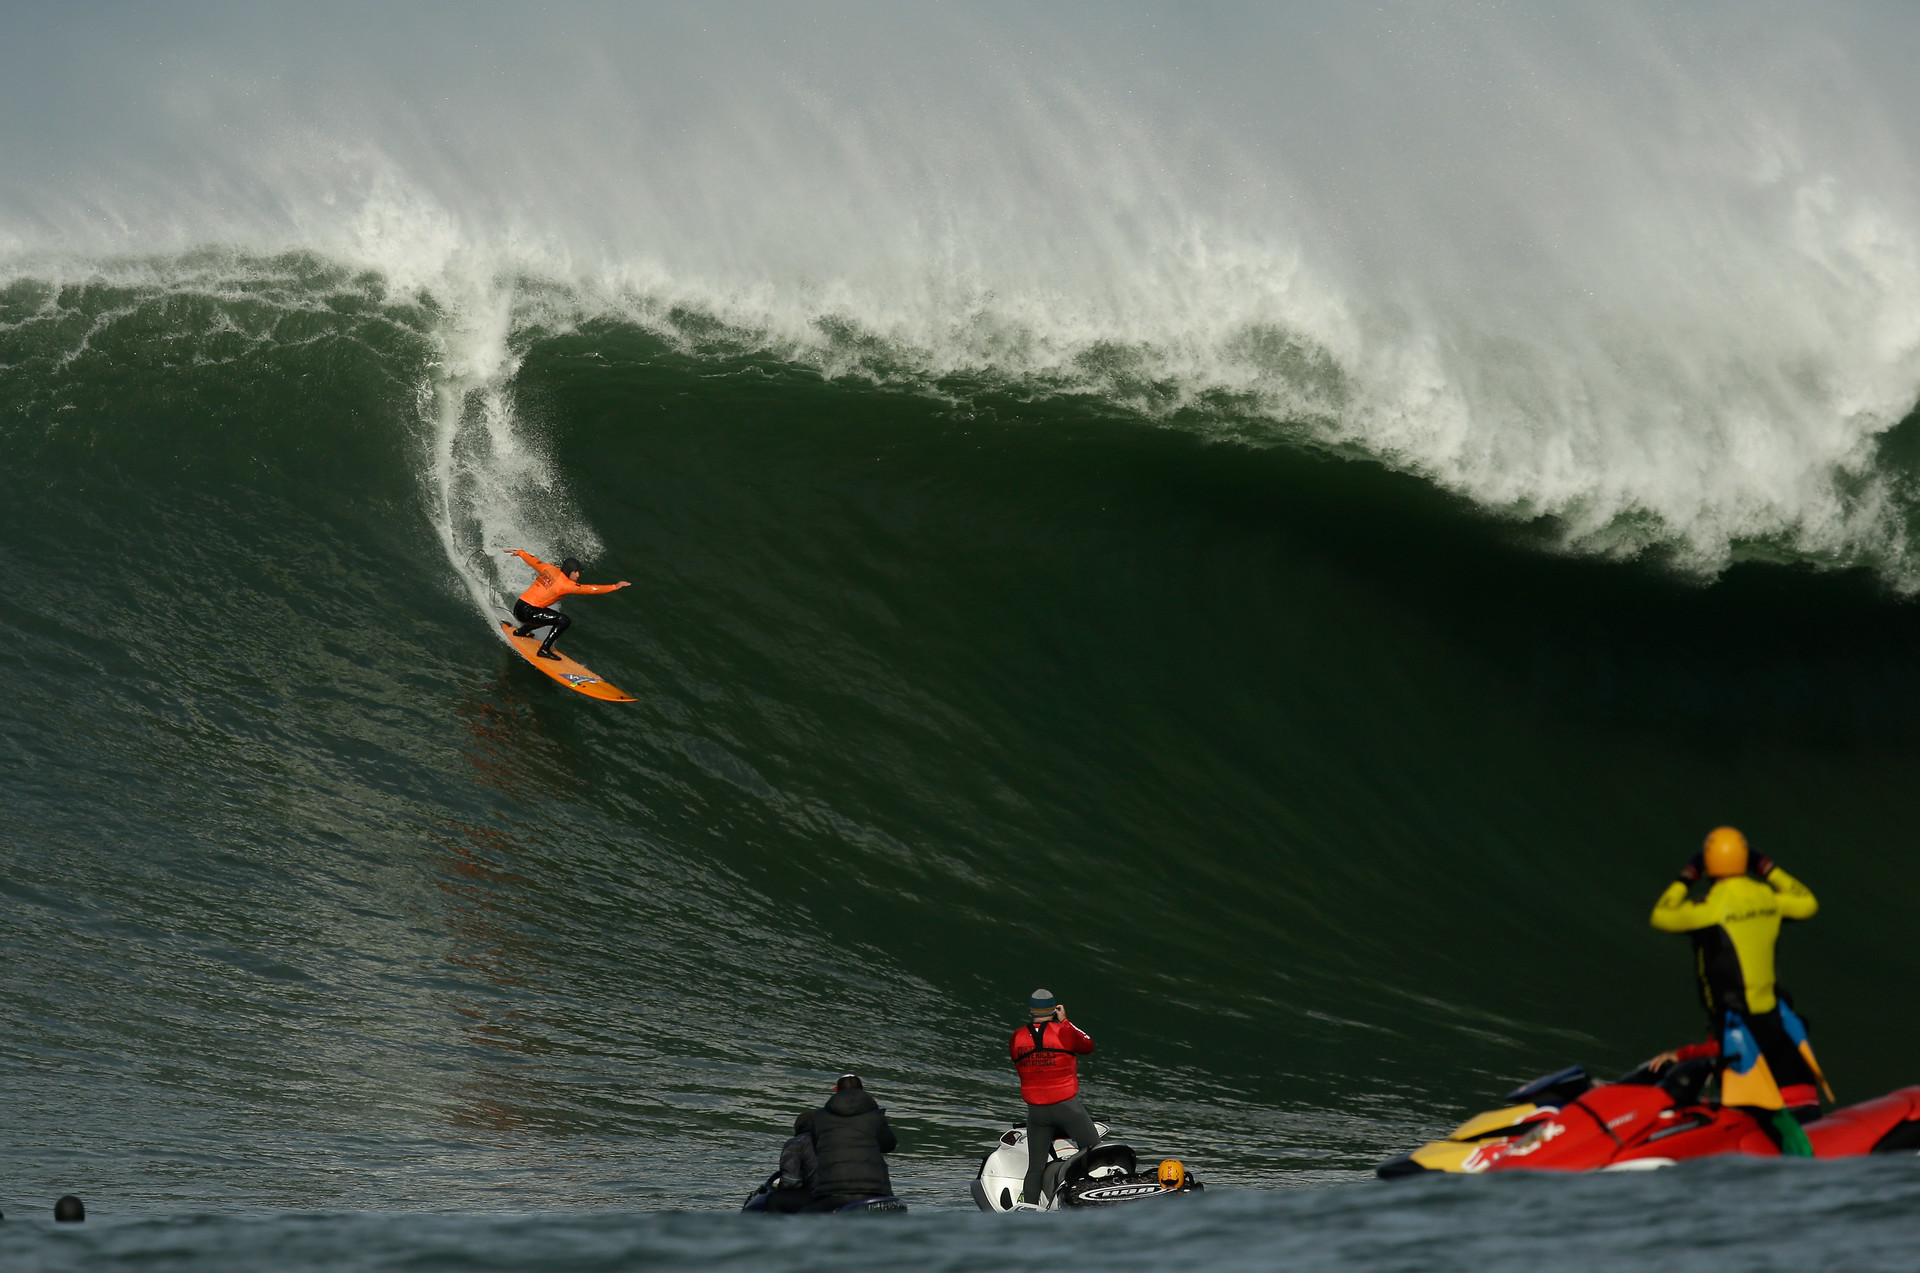 Surfing Community Reflects on Future of Mavericks Contest in Wake of Cancellation